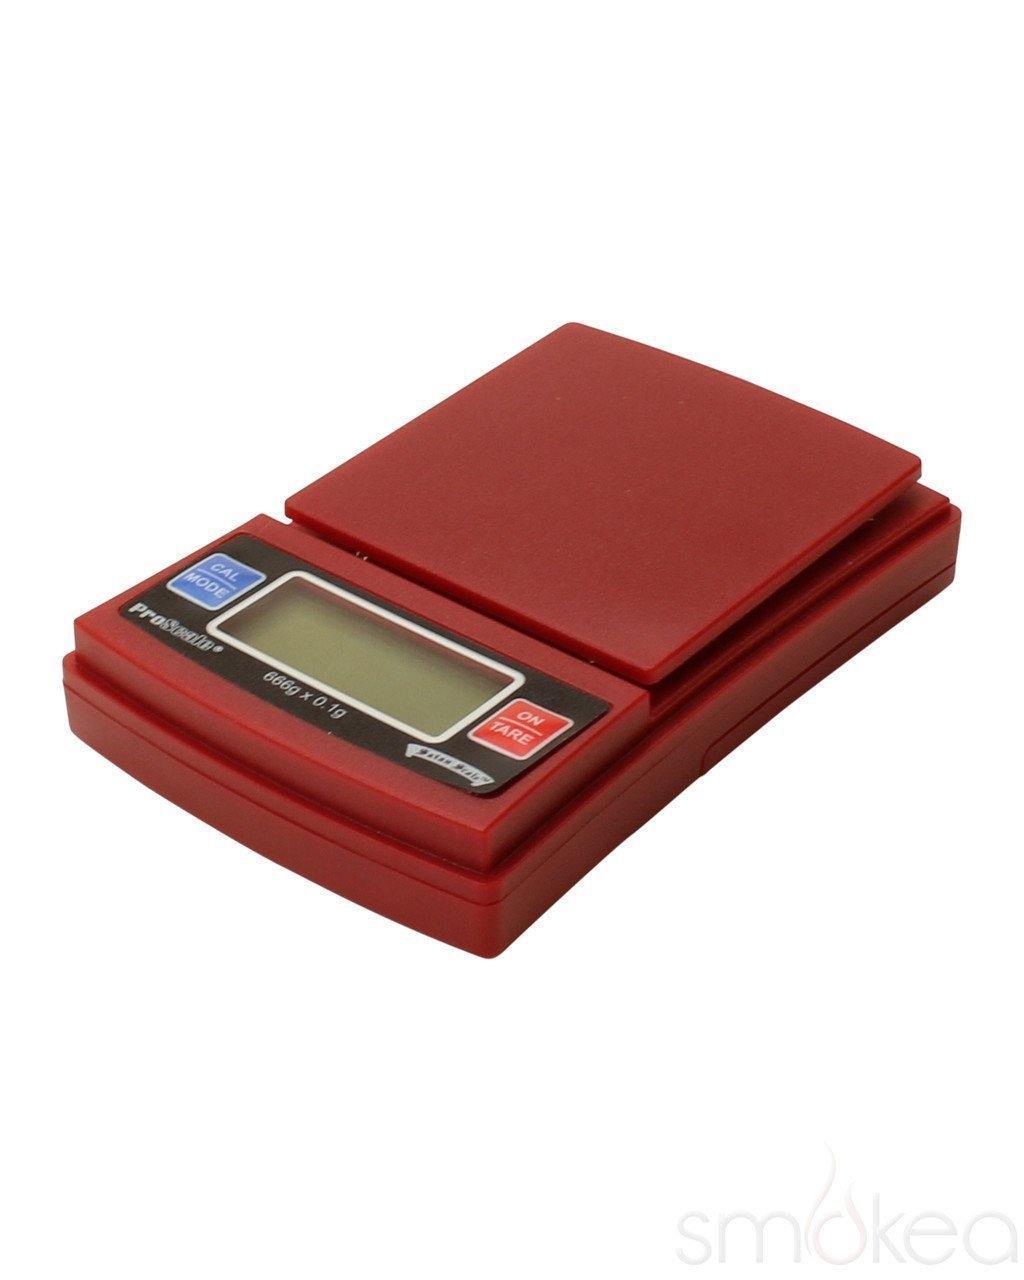 ProScale - 666 Satan Scale Digital Pocket Scale